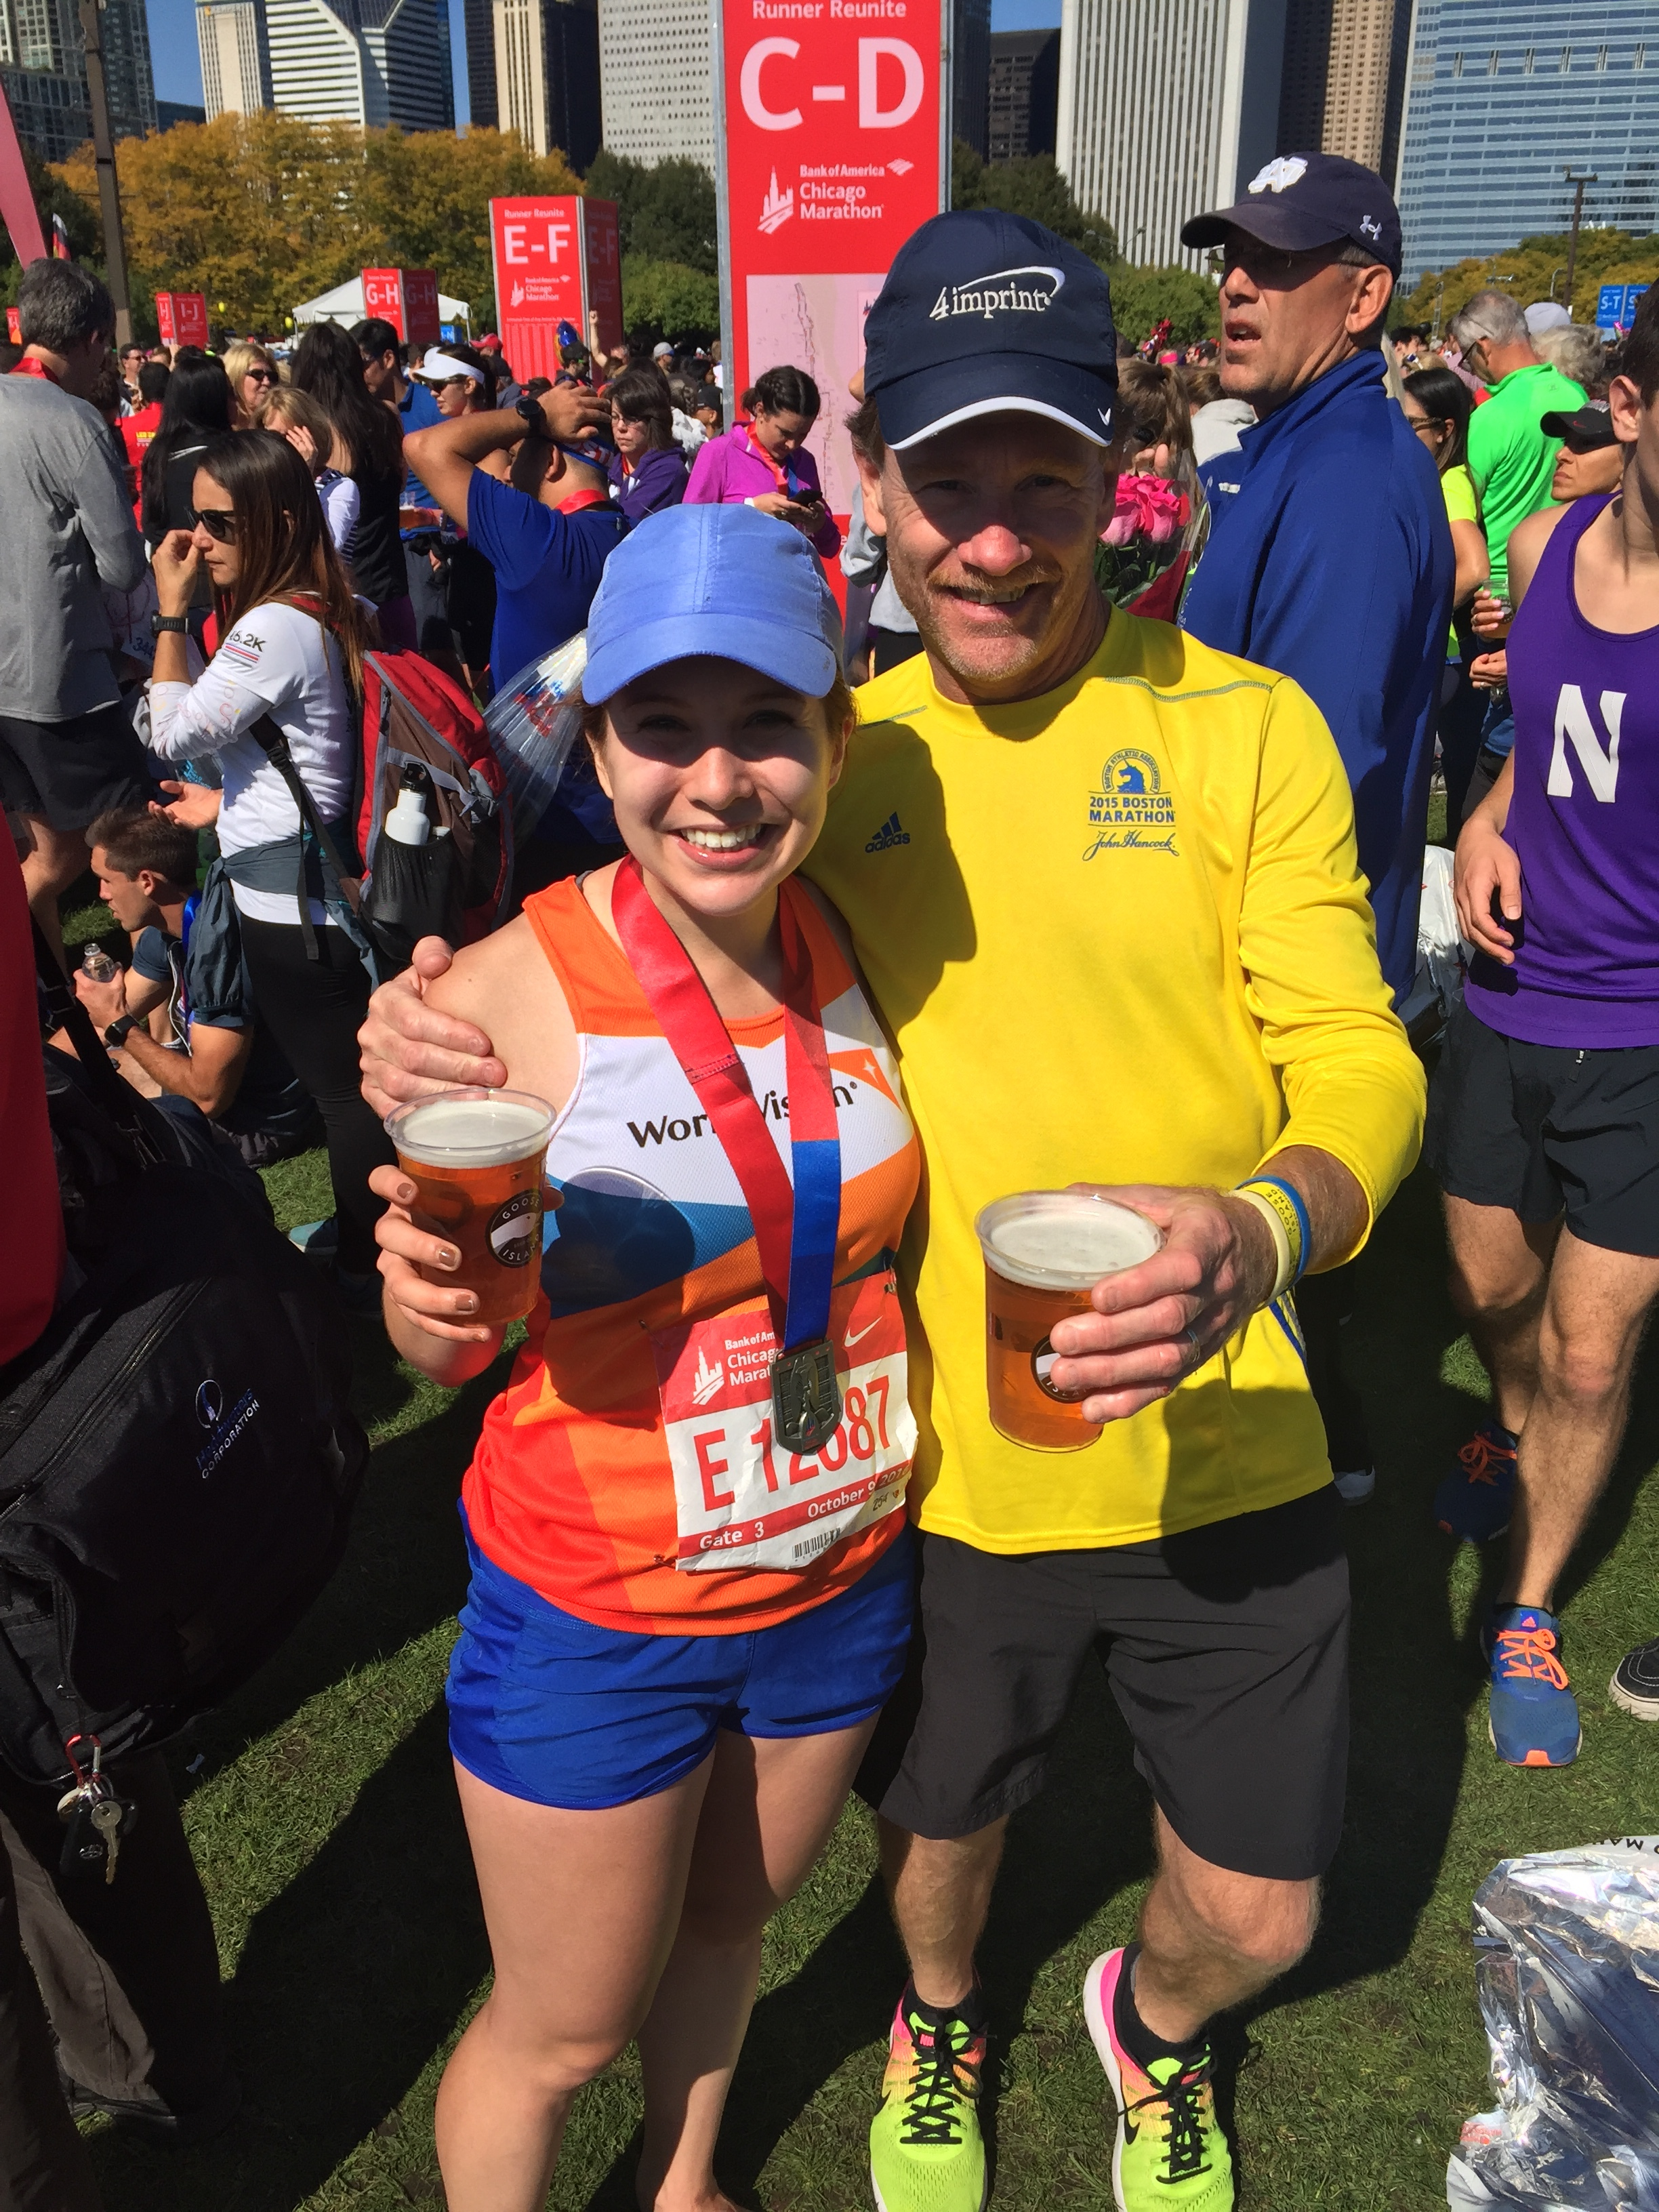 My dad & I at the 2016 Chicago Marathon Finish. This year he'll be rocking a medal around his neck too.